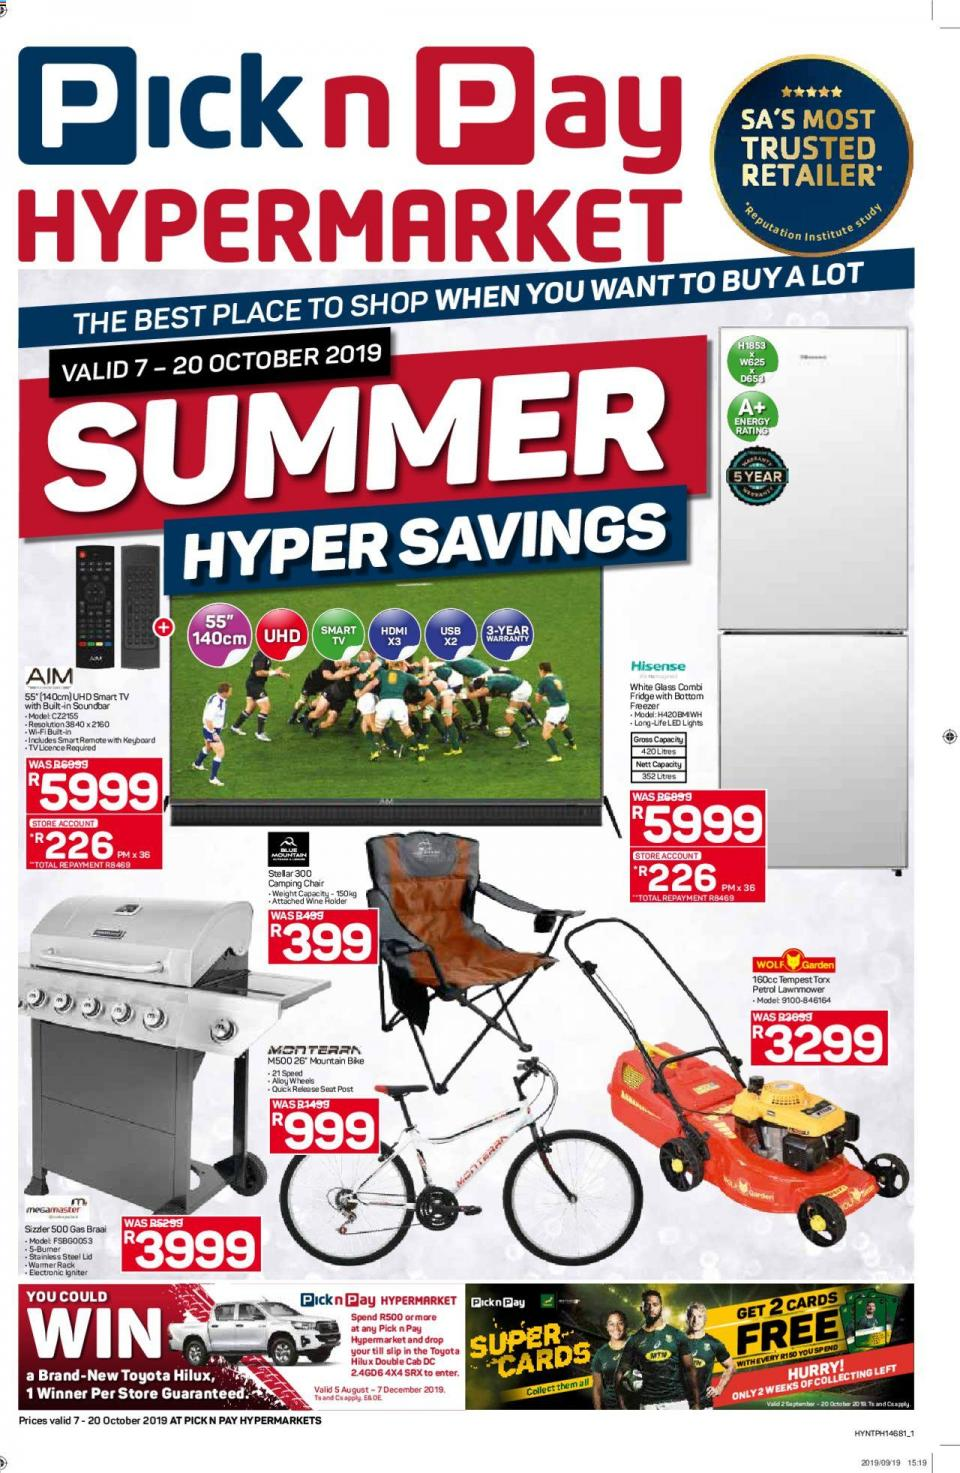 pick n pay specials hypermarket savings 07 october 2019